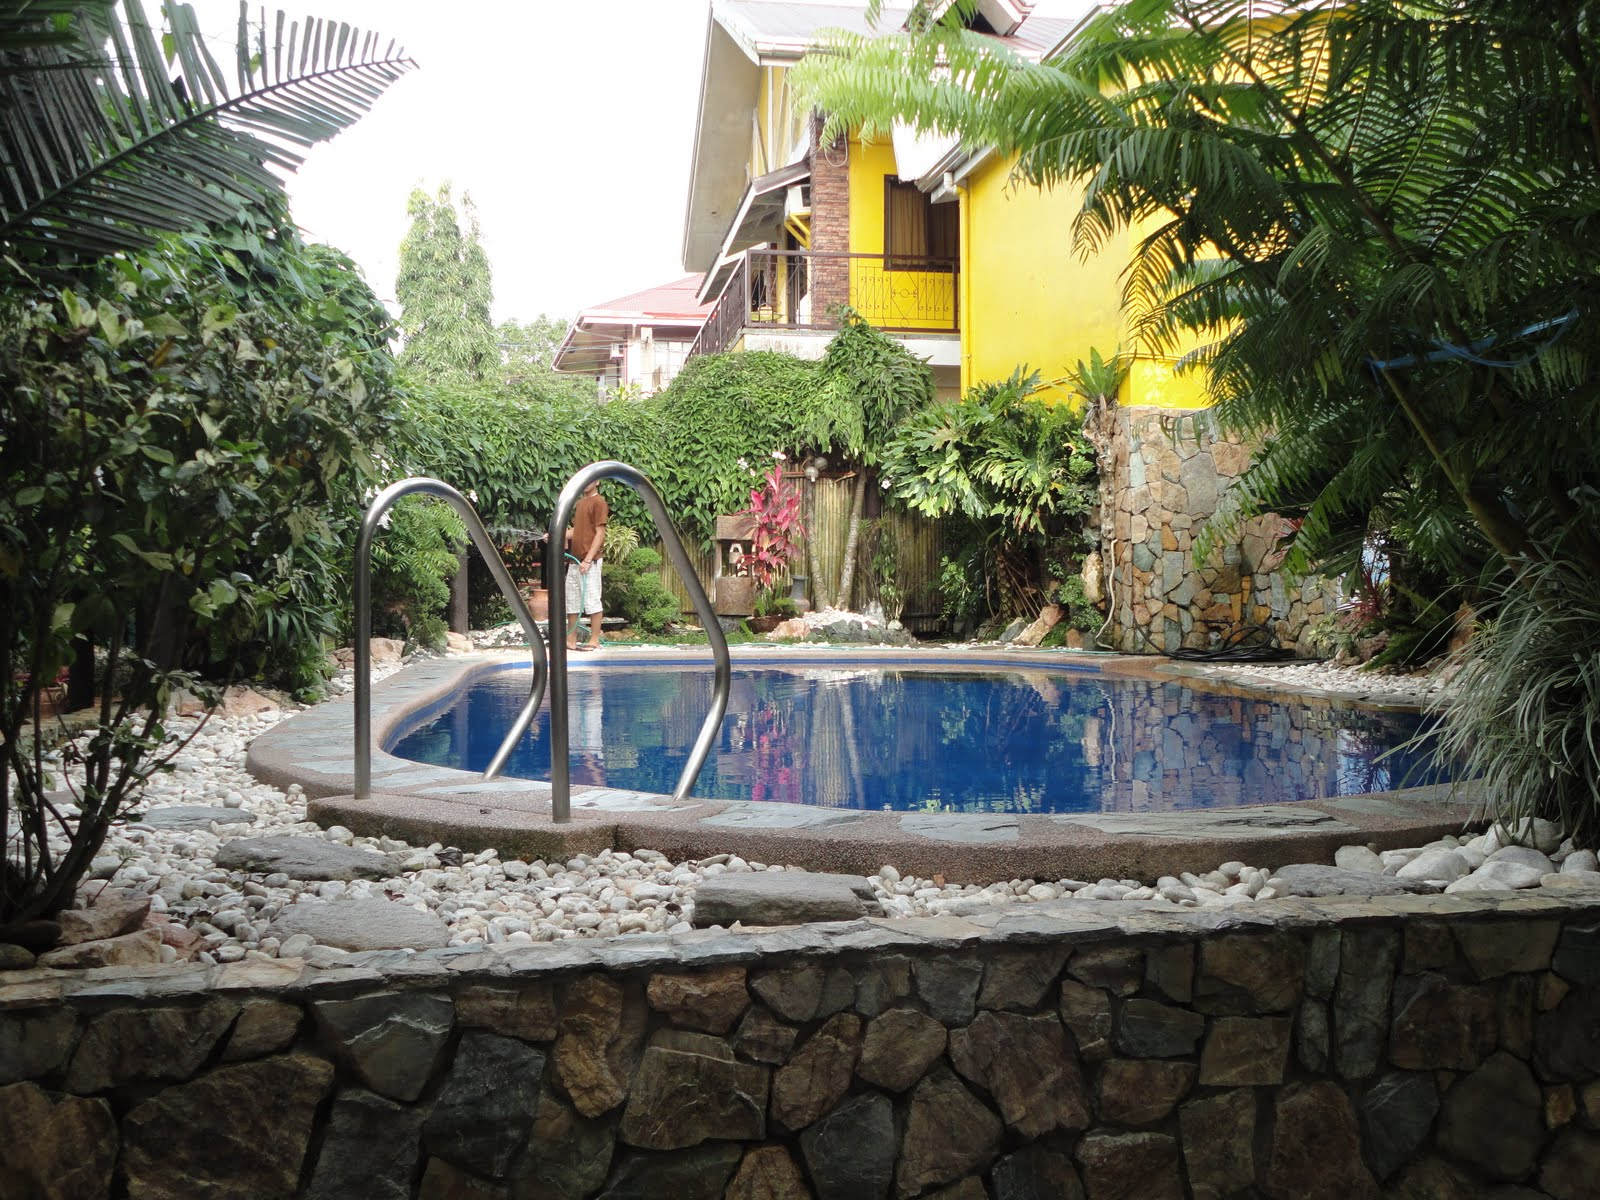 Cheap Hotels In Tagaytay With Swimming Pool